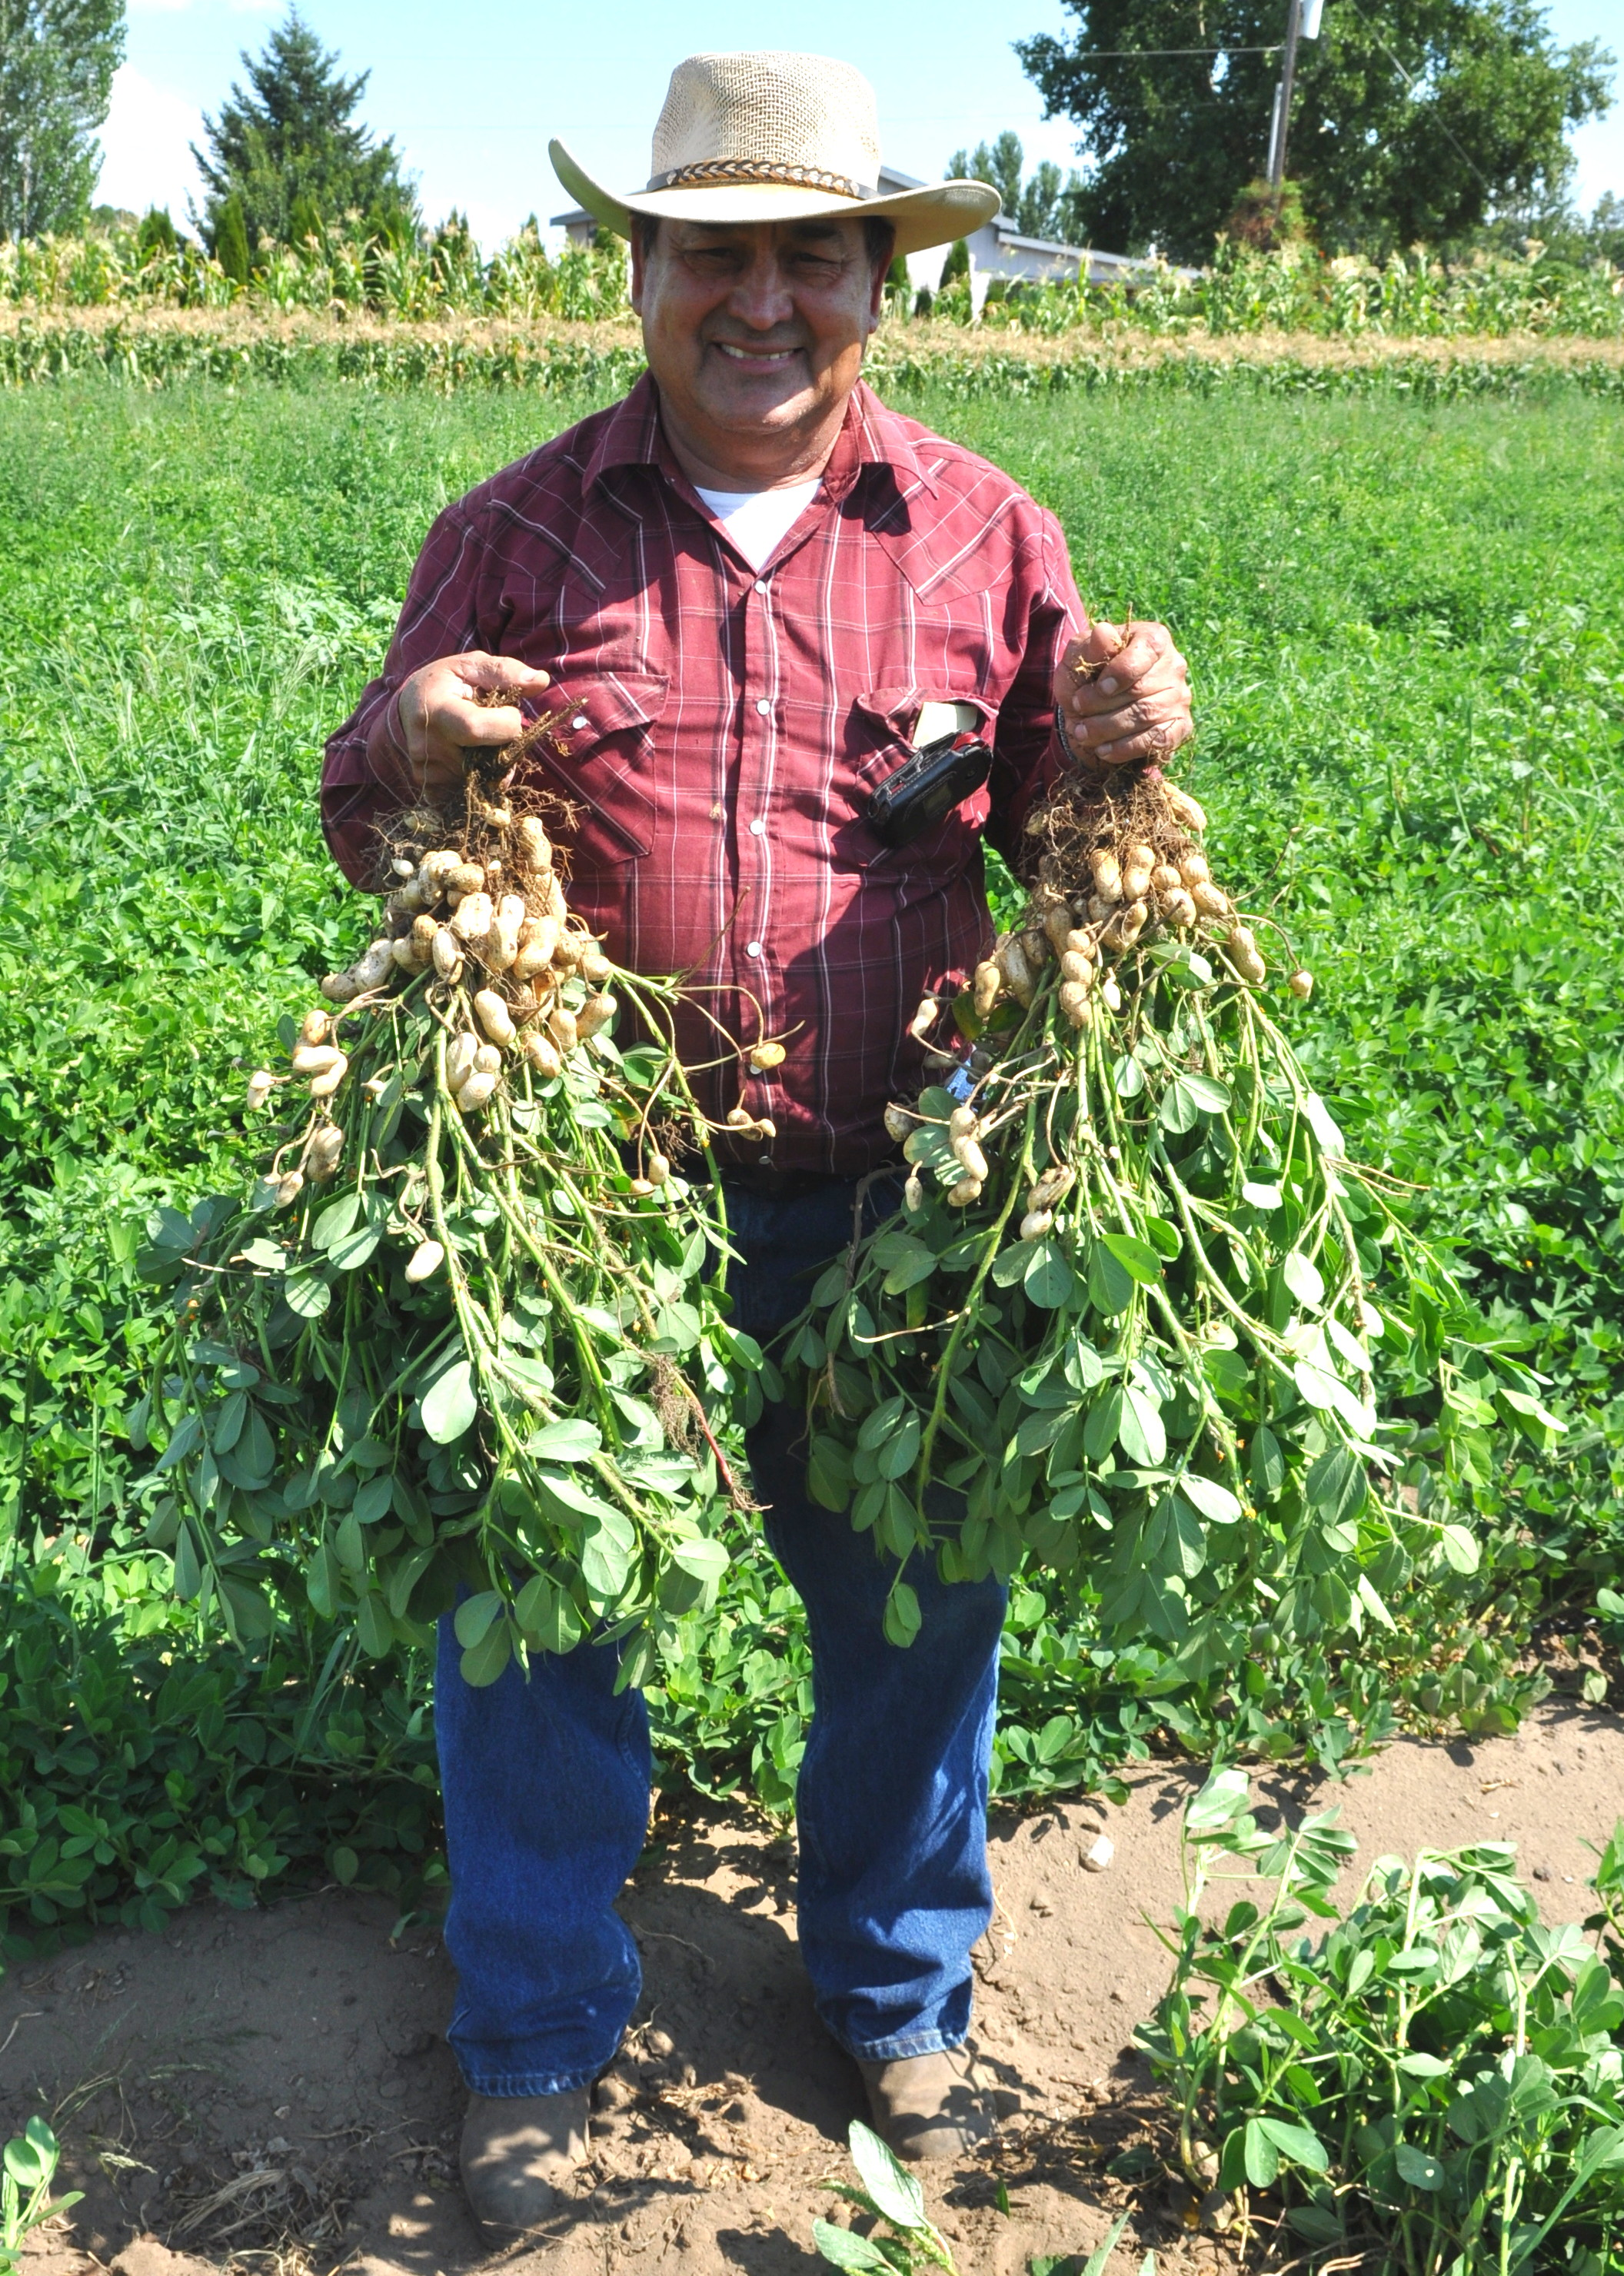 Hilario Alvarez of Alvarez Organic Farms harvesting fresh peanuts on his Mabton farm. Copyright Zachary D. Lyons.